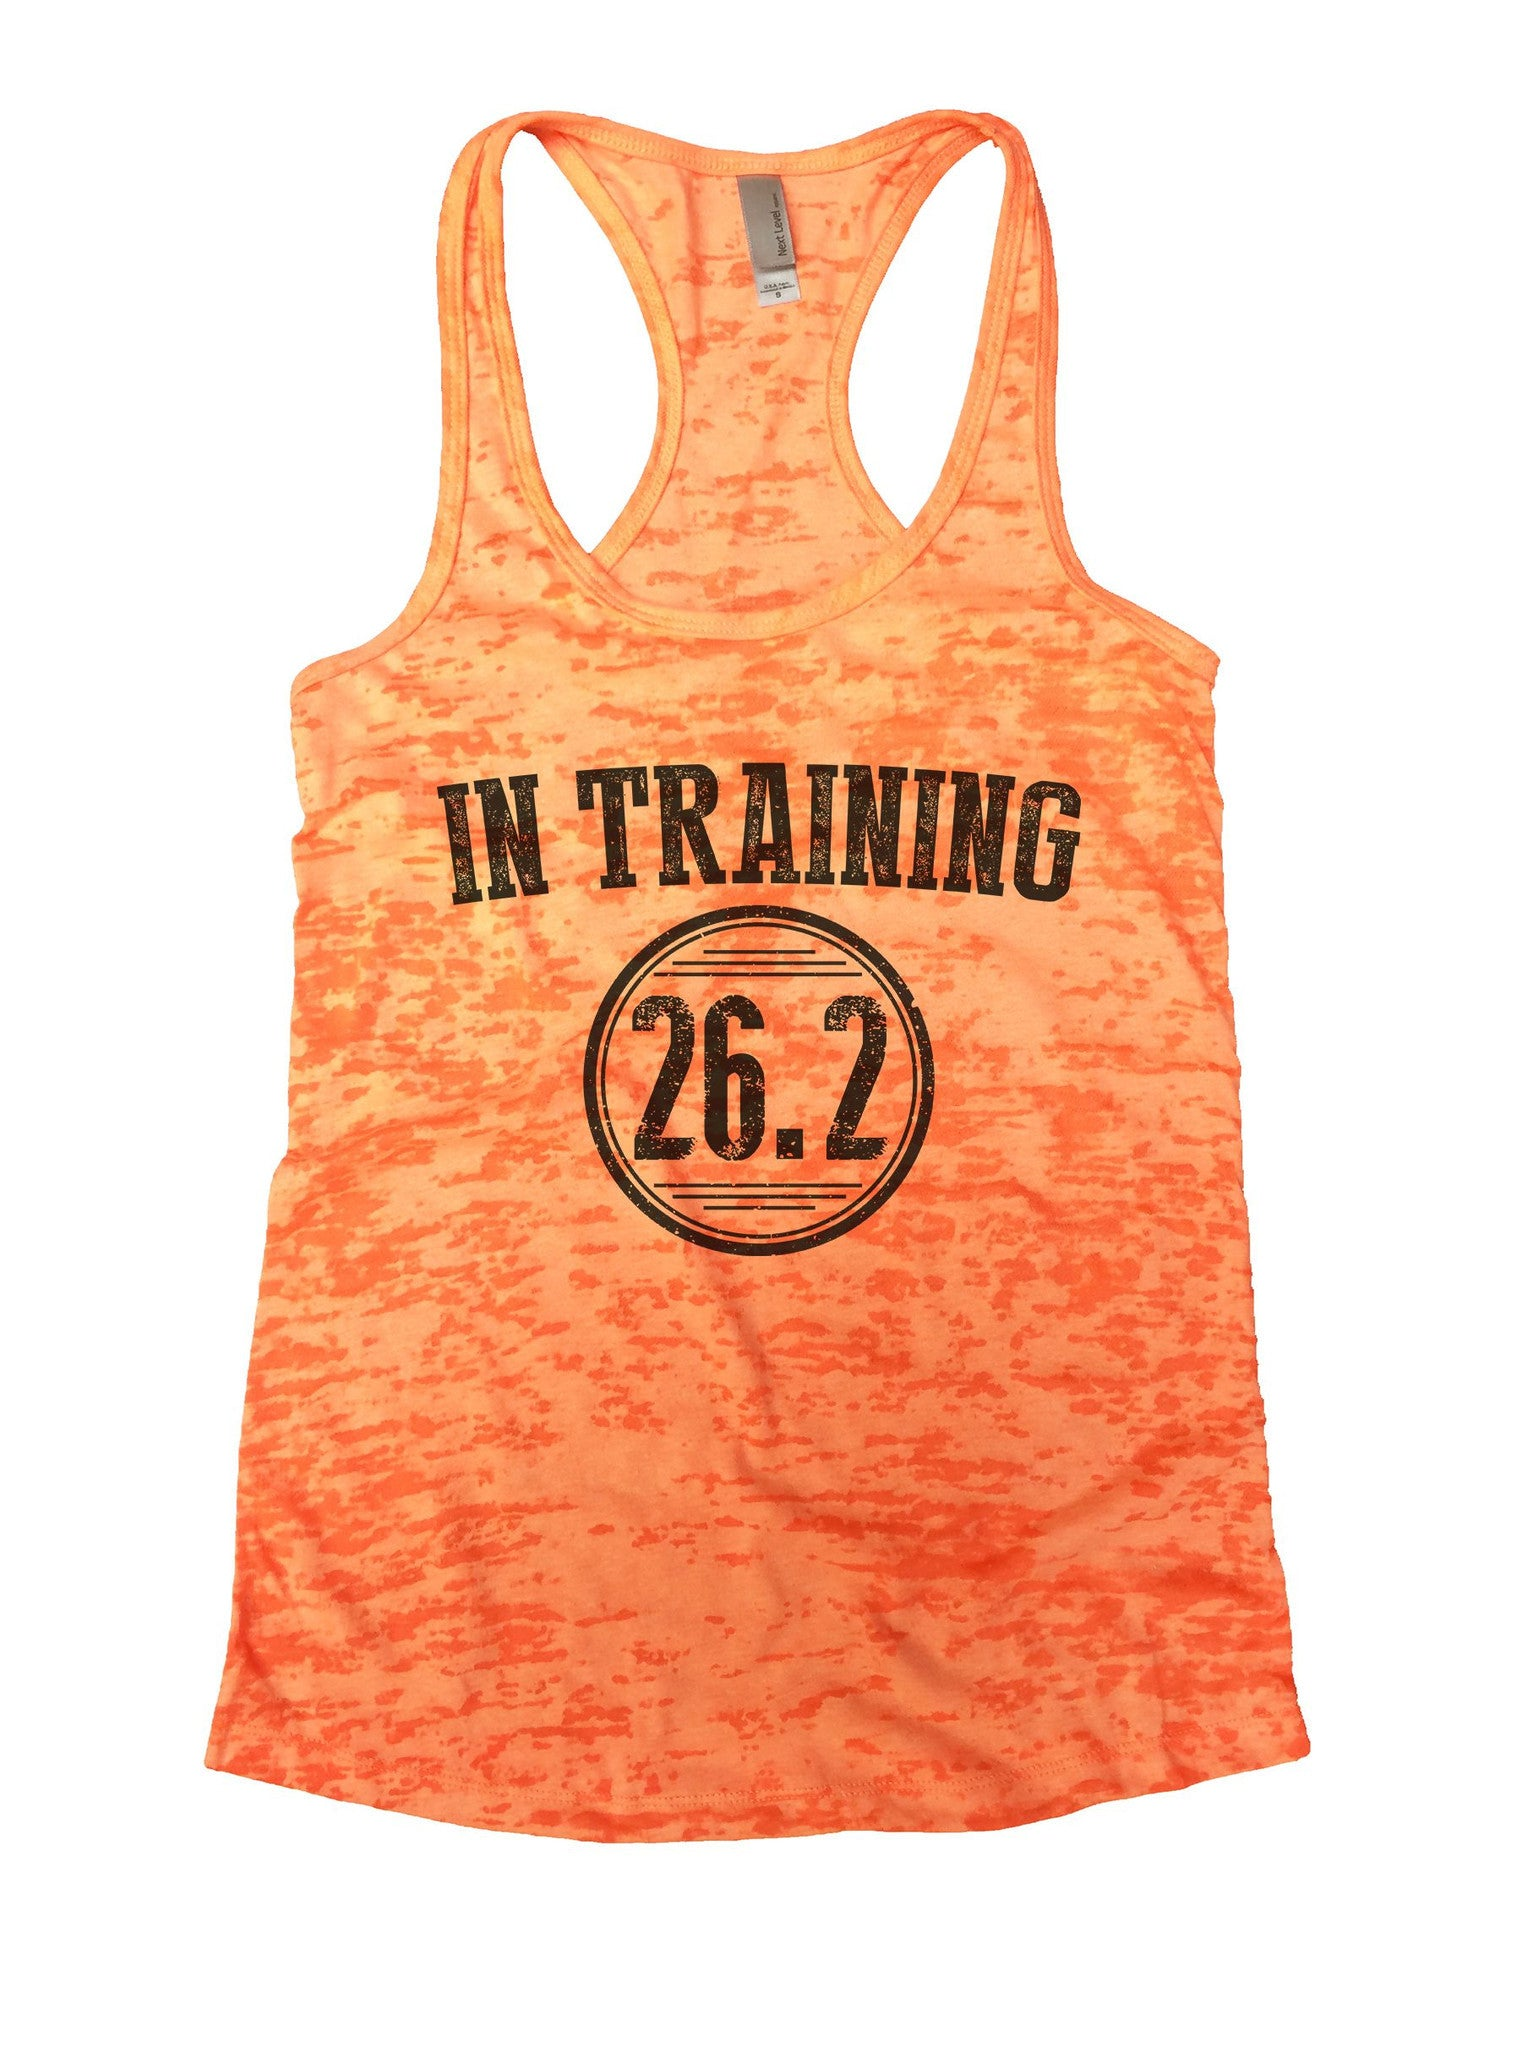 In Training 26.2 Burnout Tank Top By BurnoutTankTops.com - 1037 - Funny Shirts Tank Tops Burnouts and Triblends  - 3